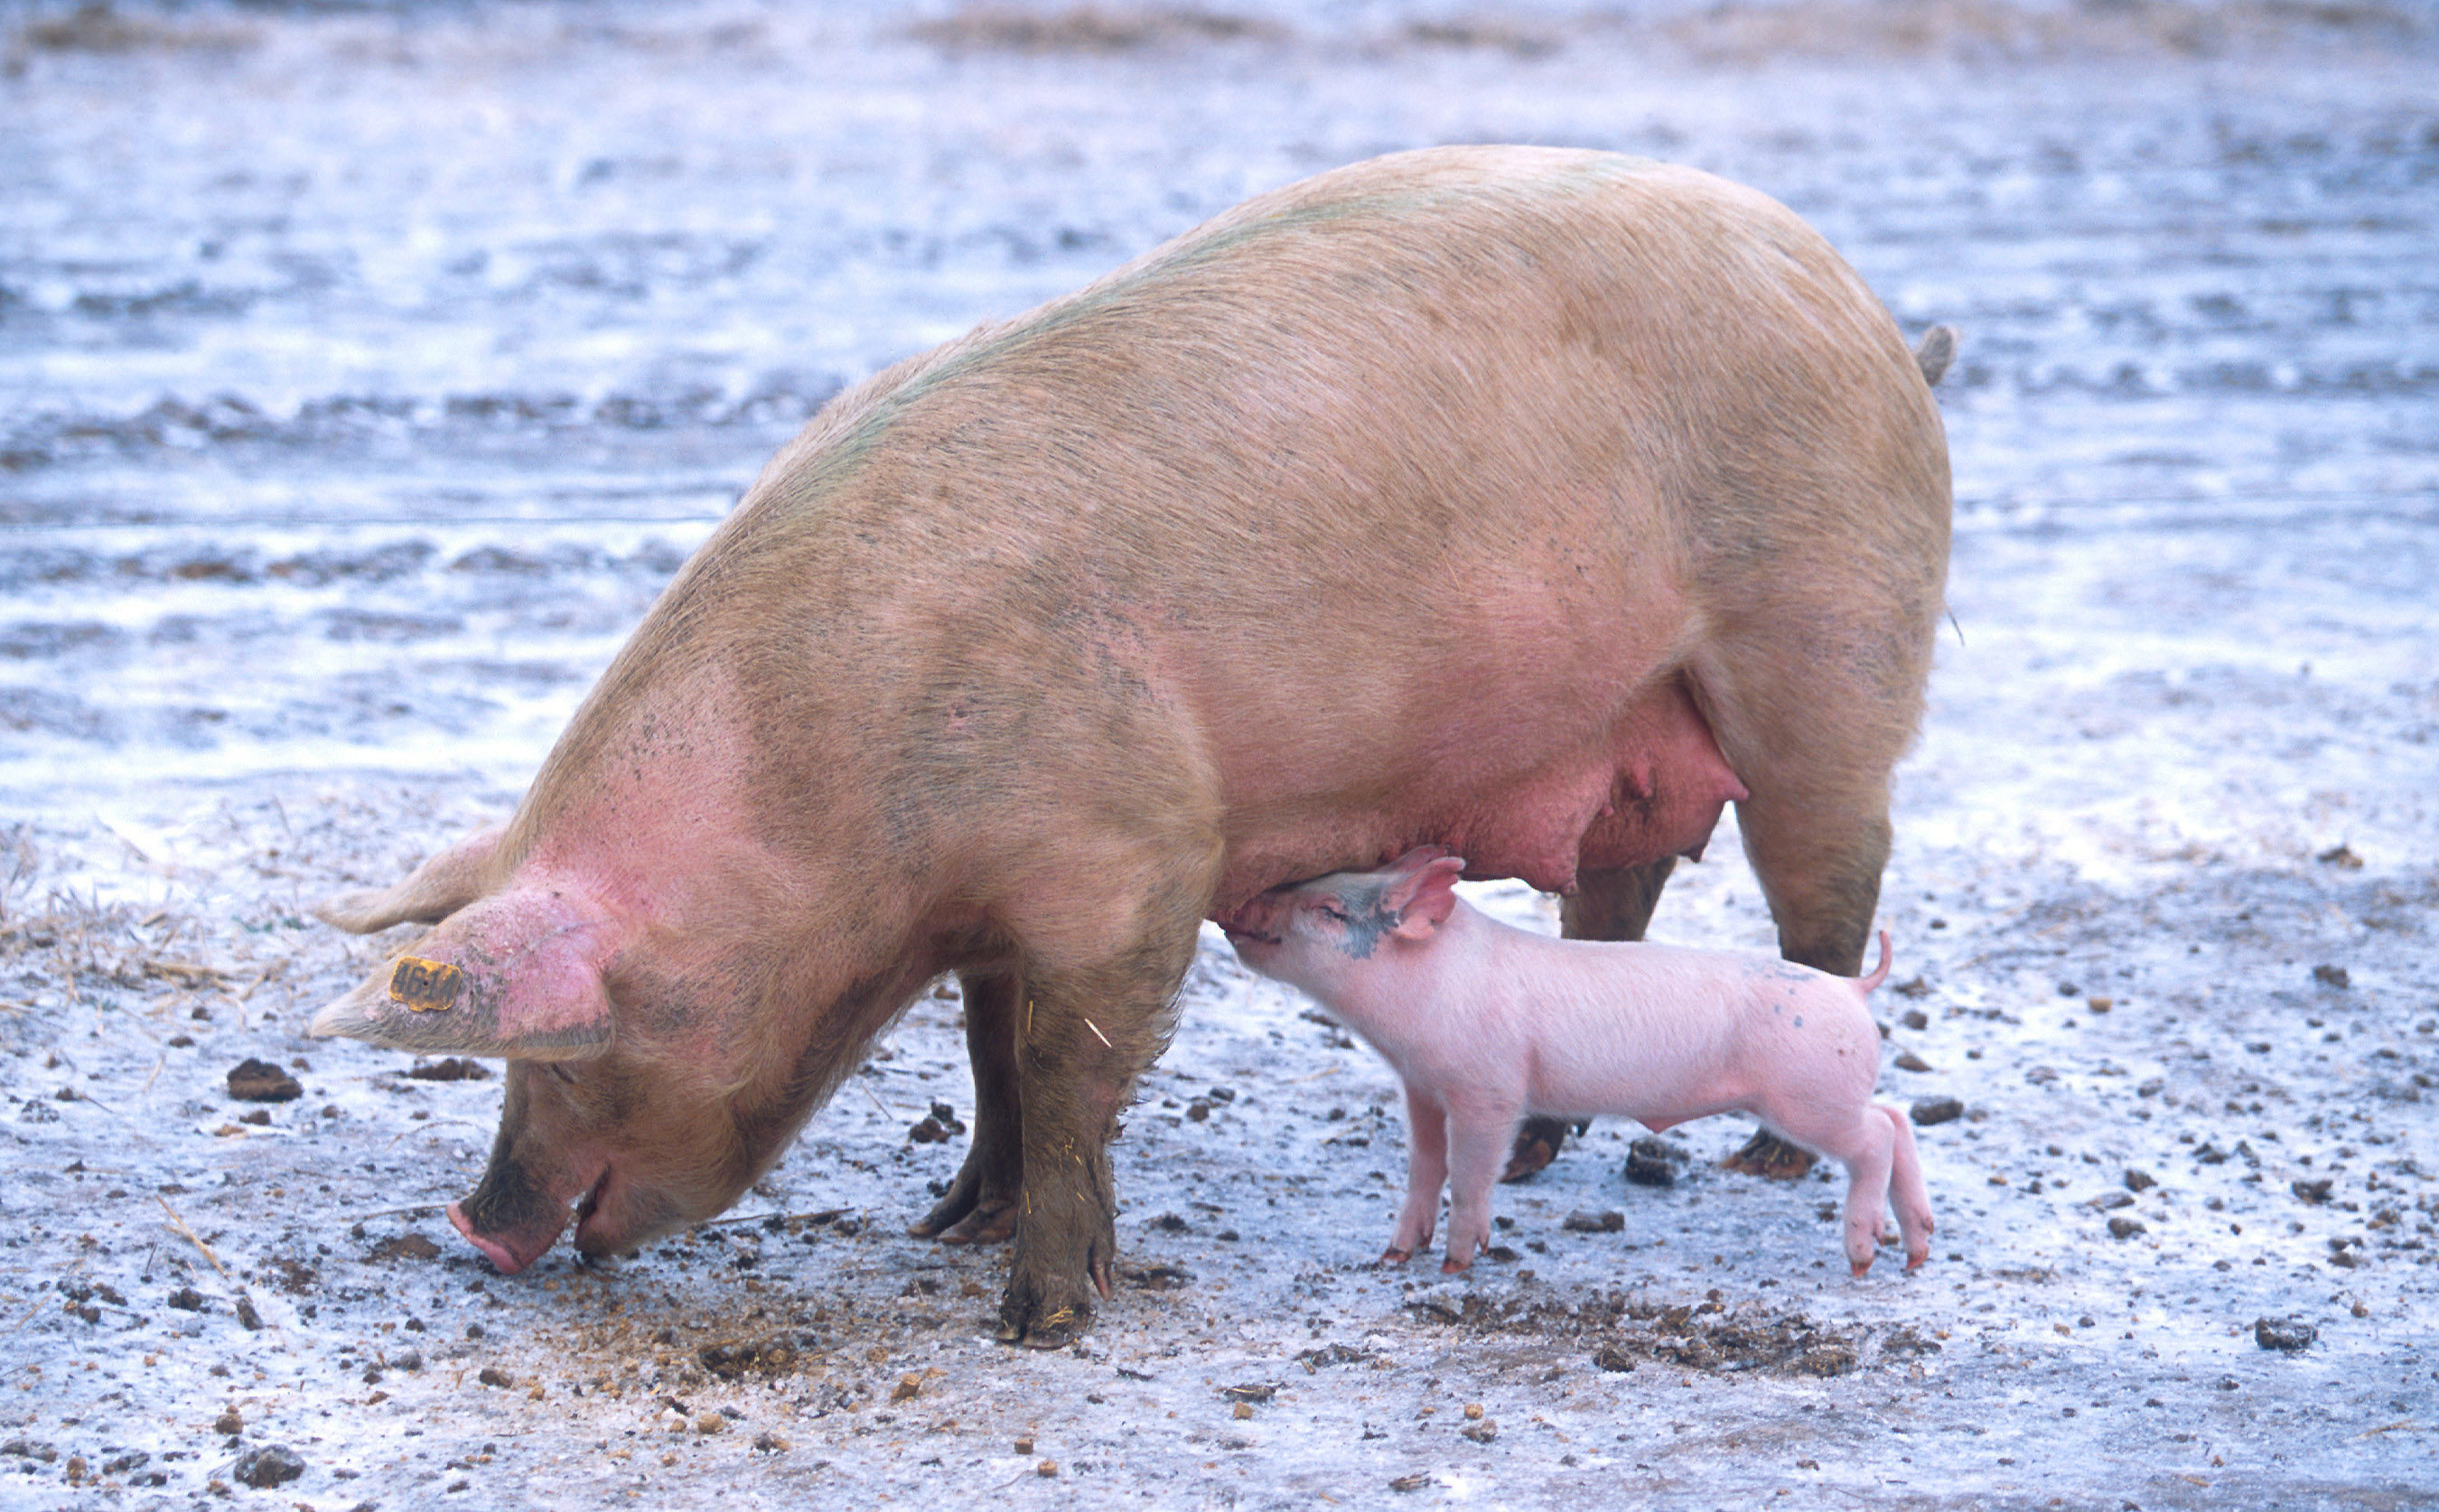 Christie Spikes Politically-Motivated Pig Gestation Crate Ban Bill